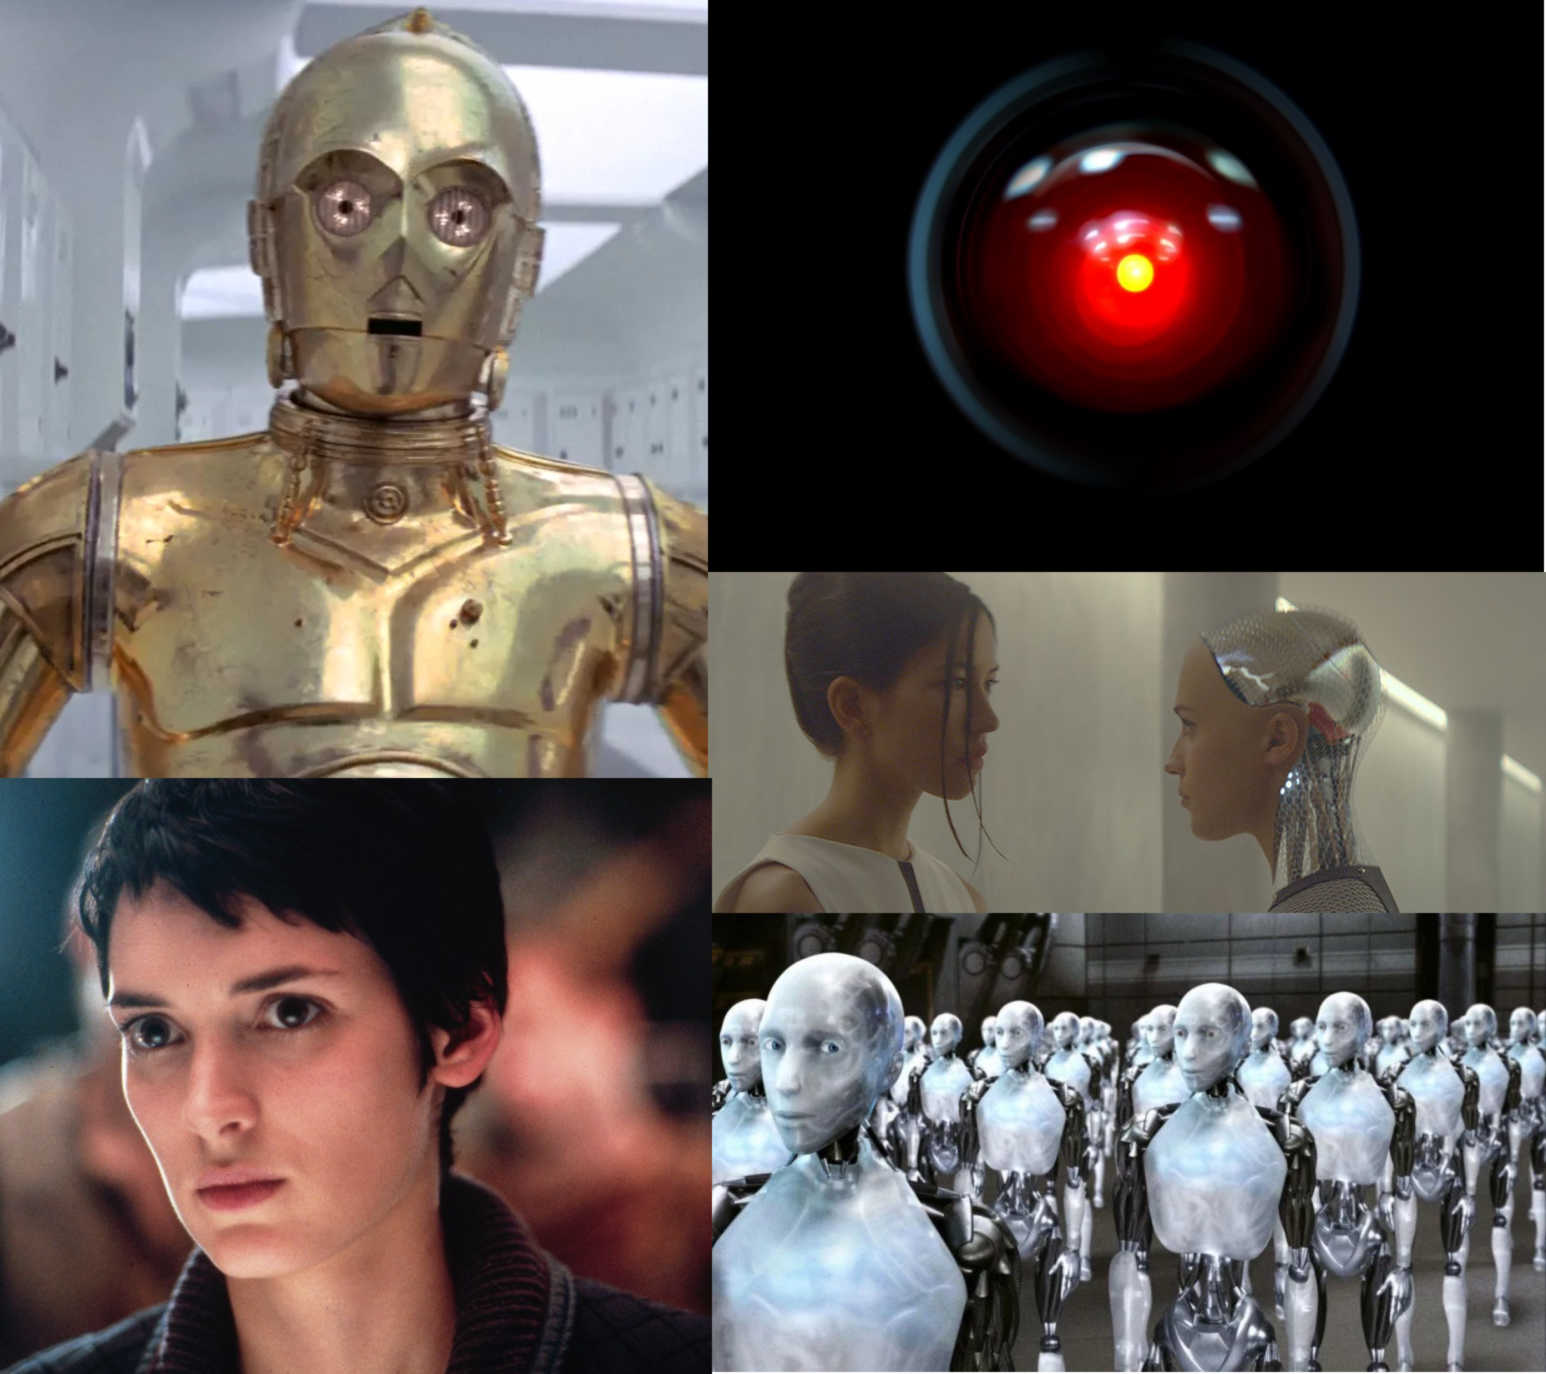 Collage of famous AI, including C3PO and HAL